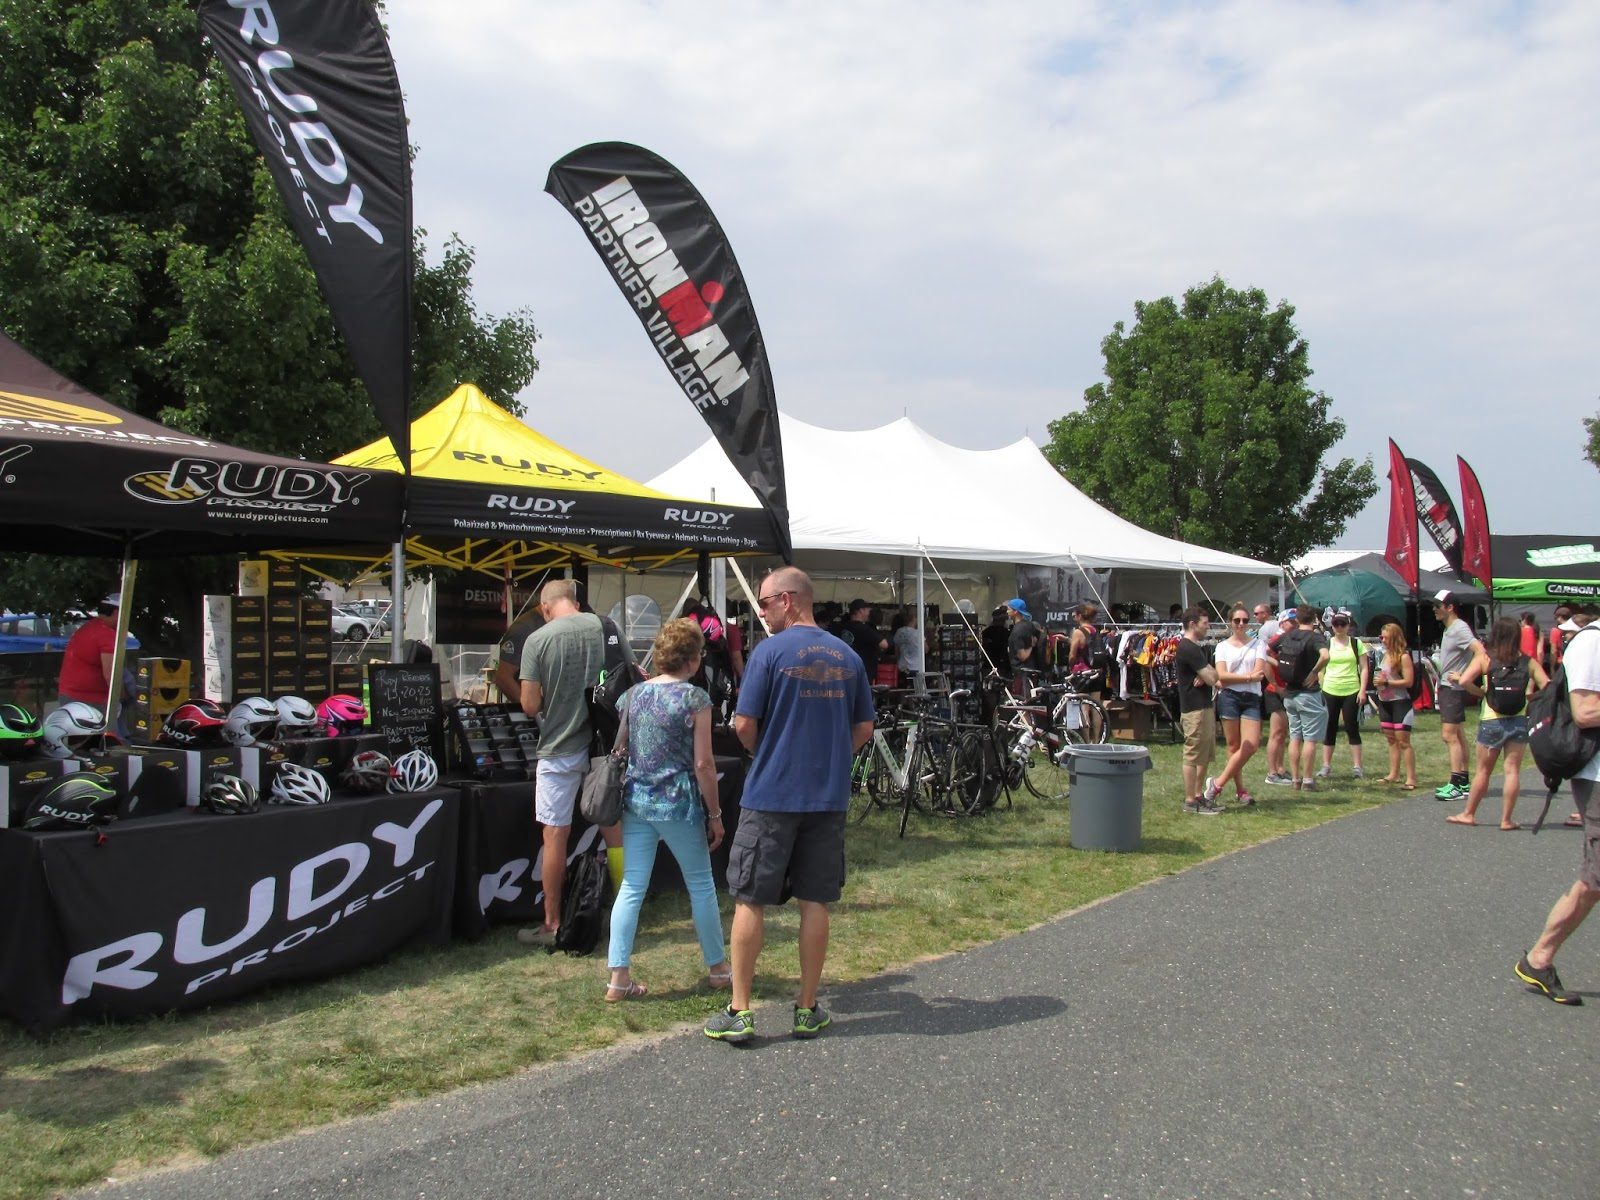 Admittedly they had some pretty cool stuff at the merch tent. I didnu0027t buy anything though. I plan on blowing the budget at the merchandise tent in Kona. & Tri Runner Rick: 2015 Ironman Eagleman 70.3 Race Report